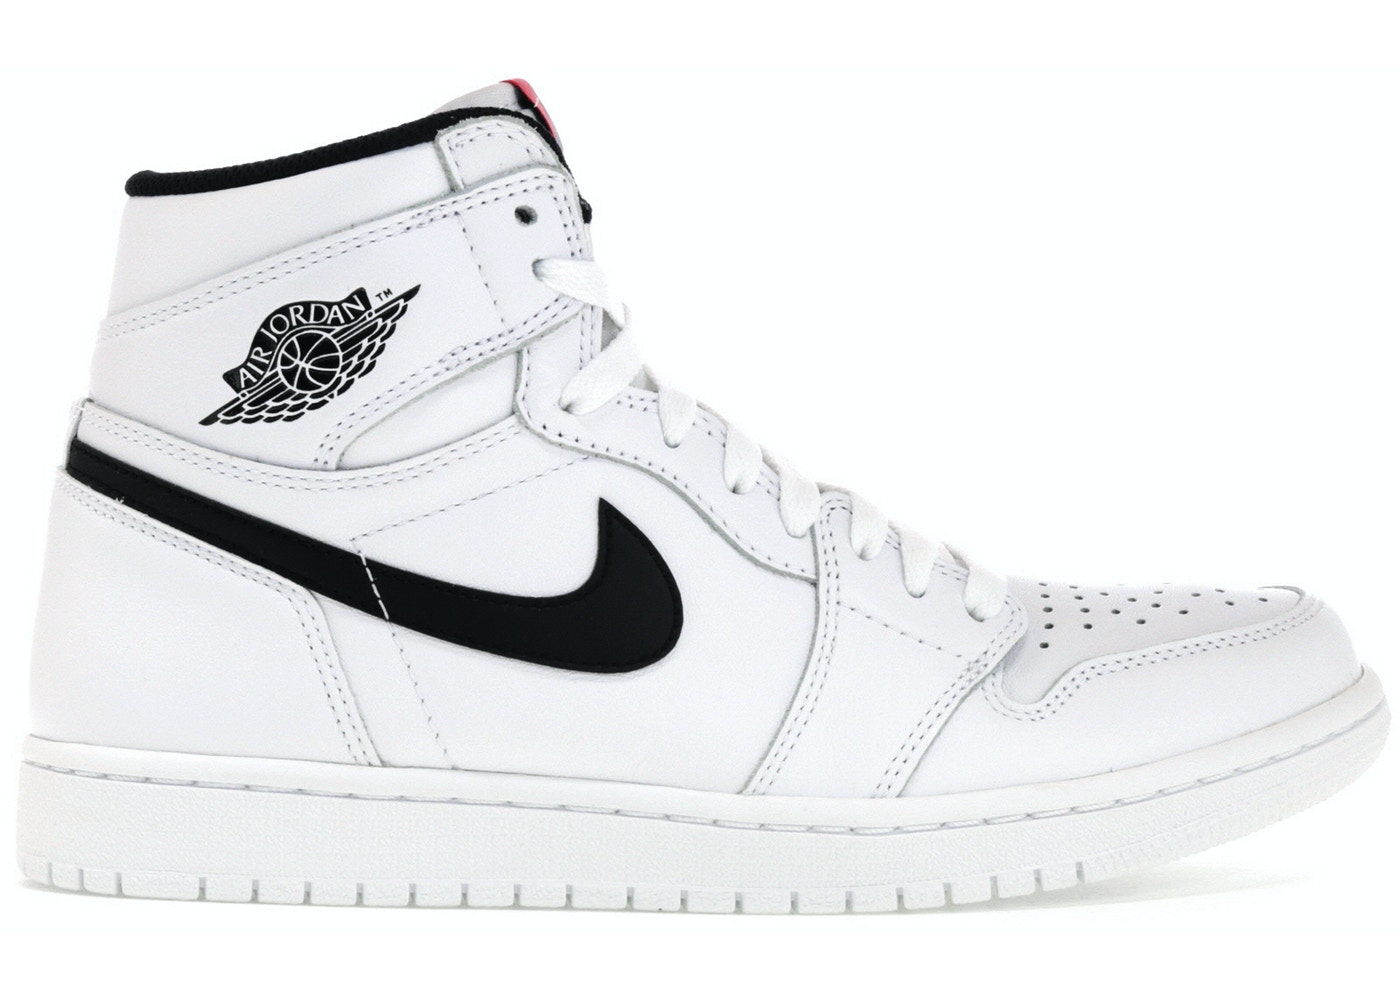 finest selection 4def5 571bb Jordan 1 Retro Yin Yang White - 555088-102